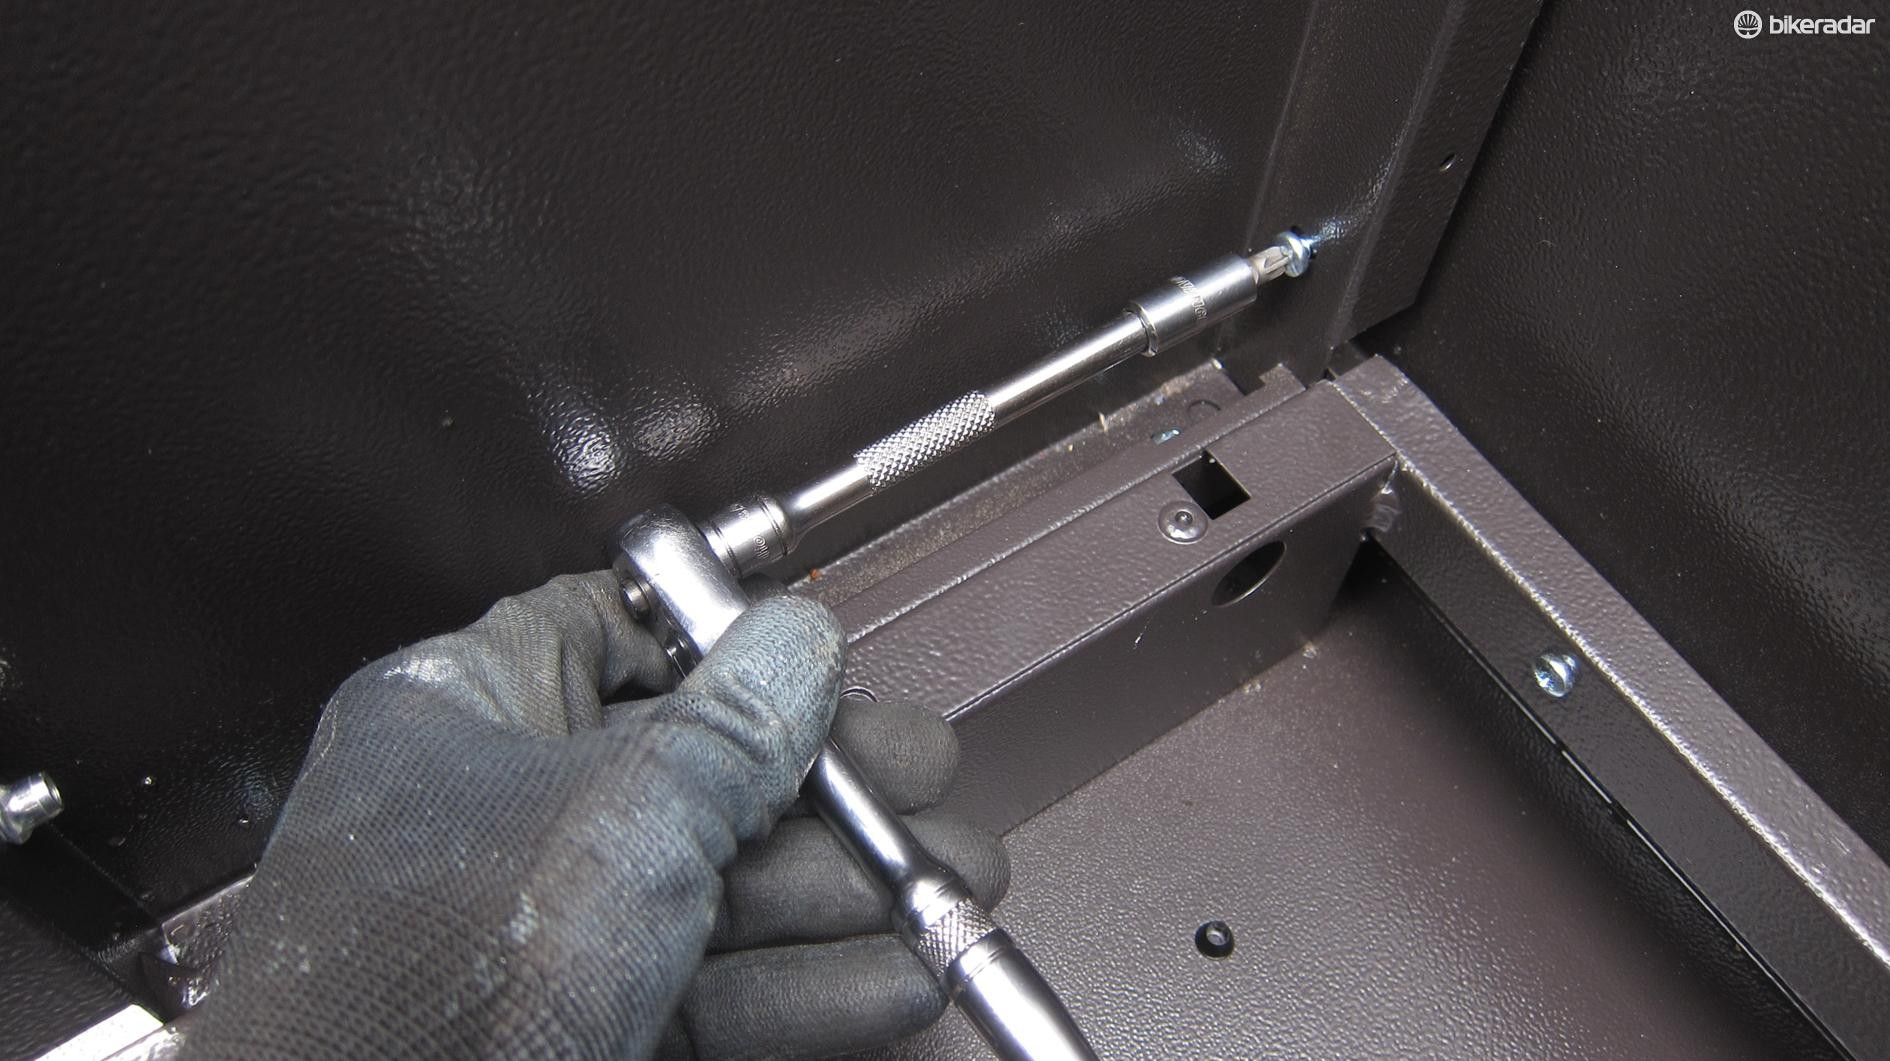 A few of the fasteners are tricky to get at and a ratchet makes life easier